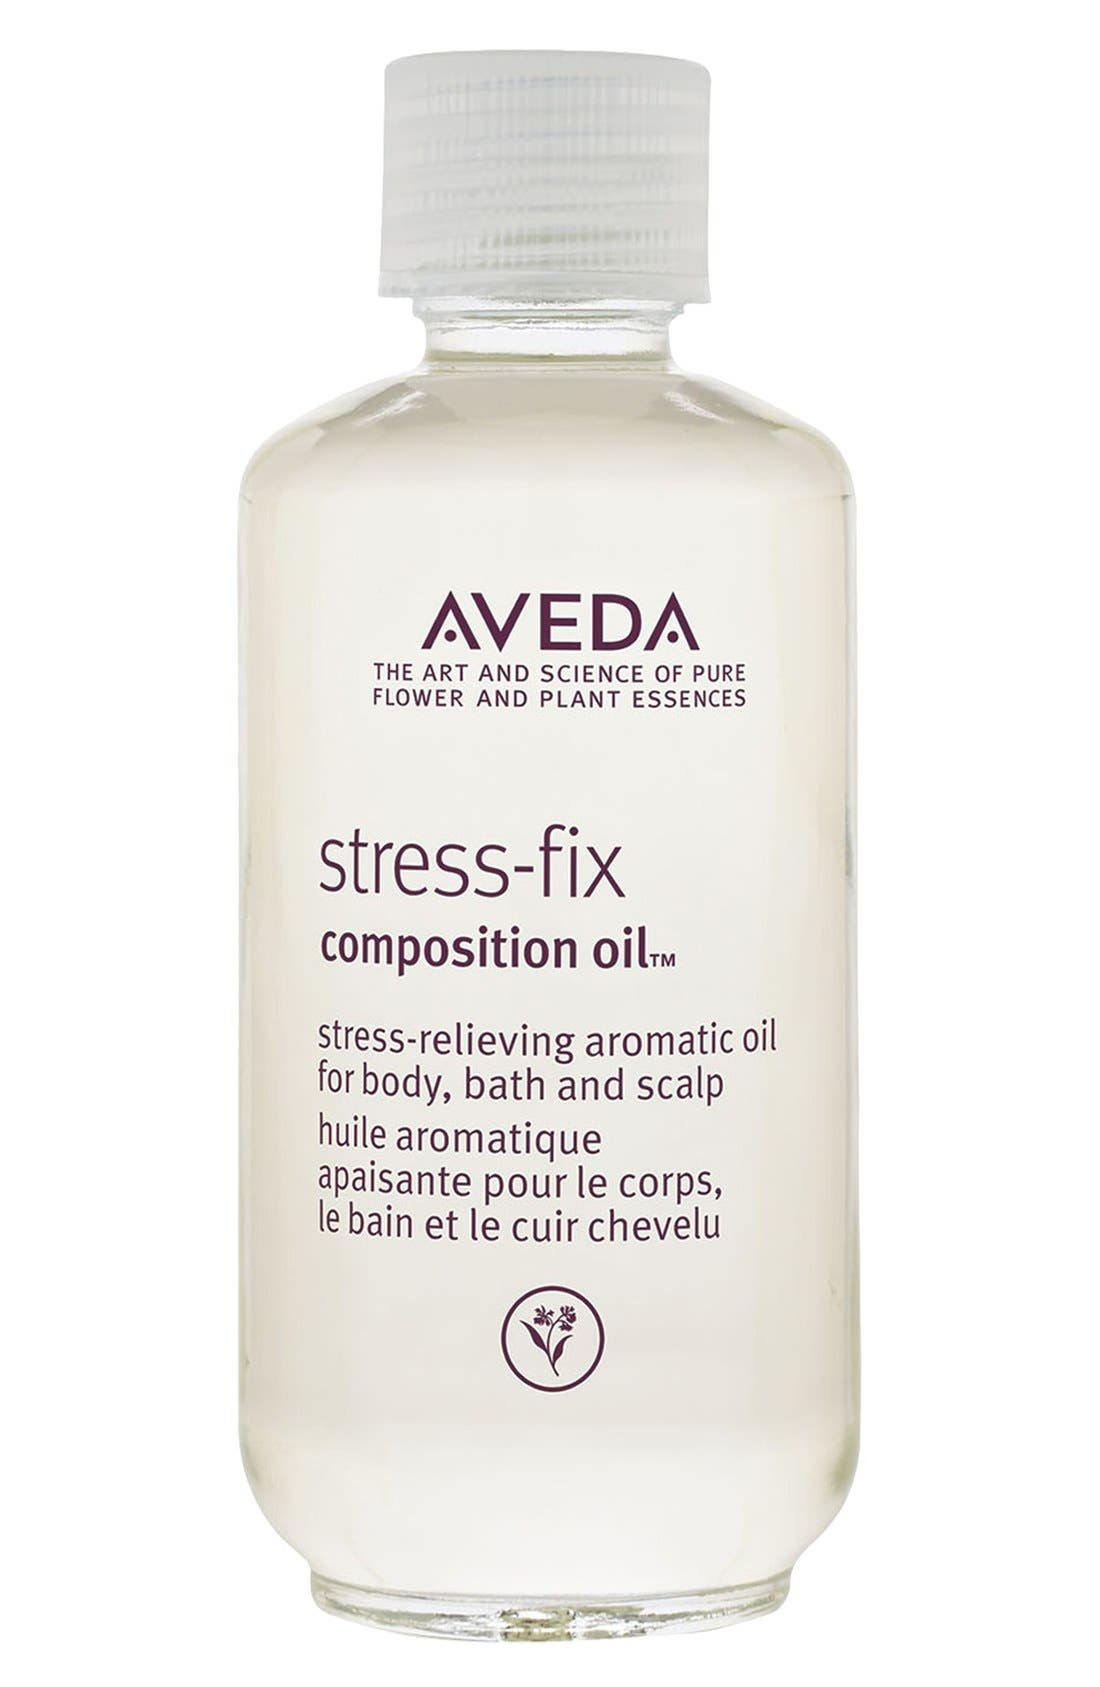 Aveda 'stress-fix composition oil™' Stress-Relieving Aromatic Oil for Body, Bath & Scalp